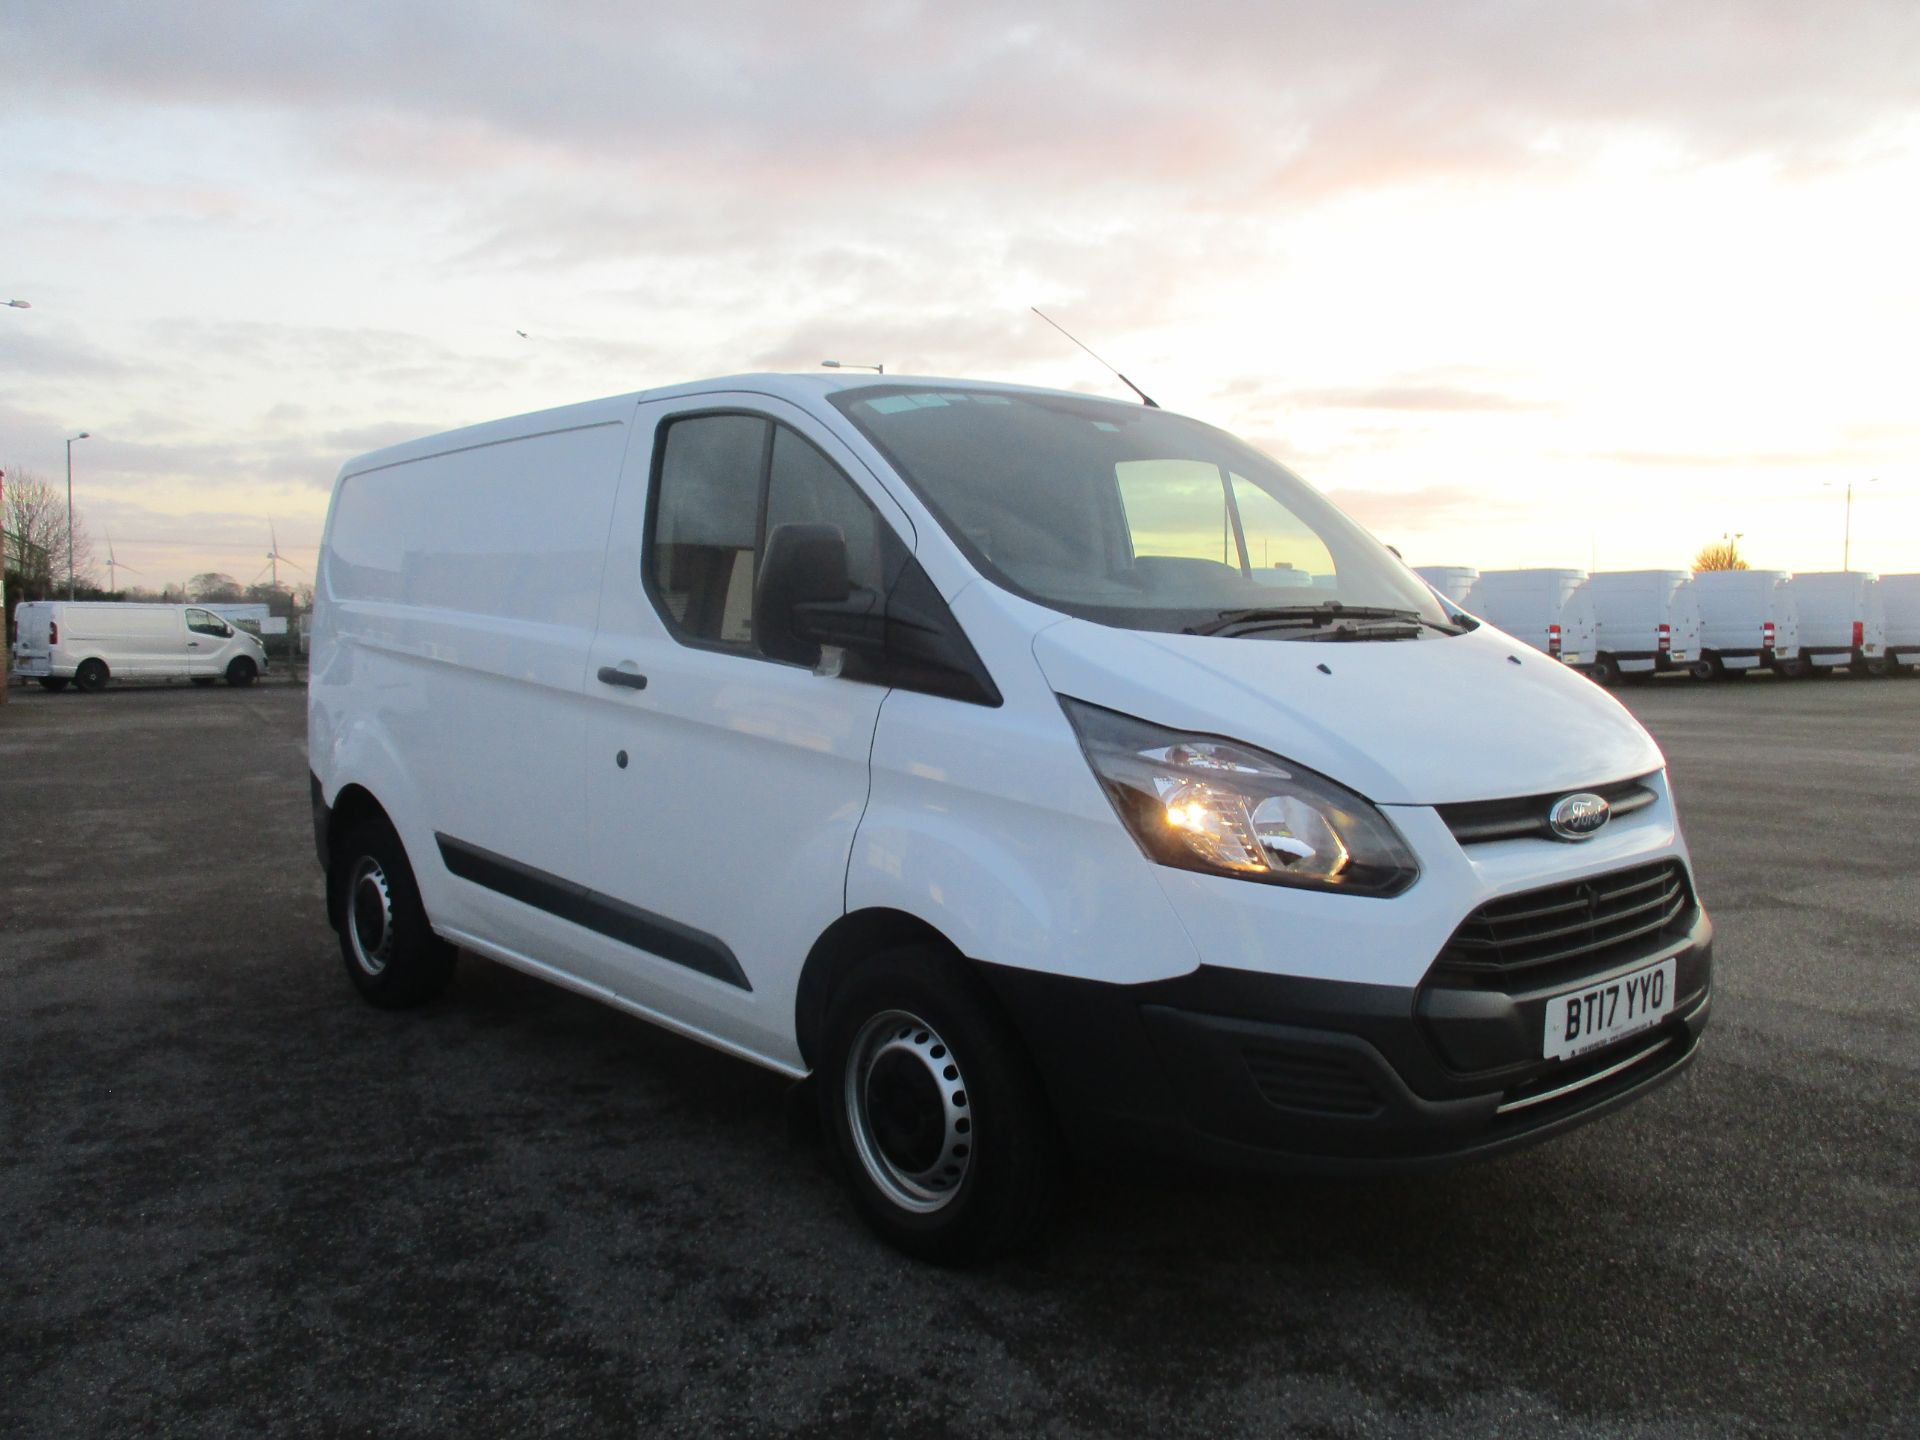 2017 Ford Transit Custom 290 L1 DIESEL FWD 2.0 TDCI 105PS LOW ROOF VAN EURO 6 (BT17YYO)